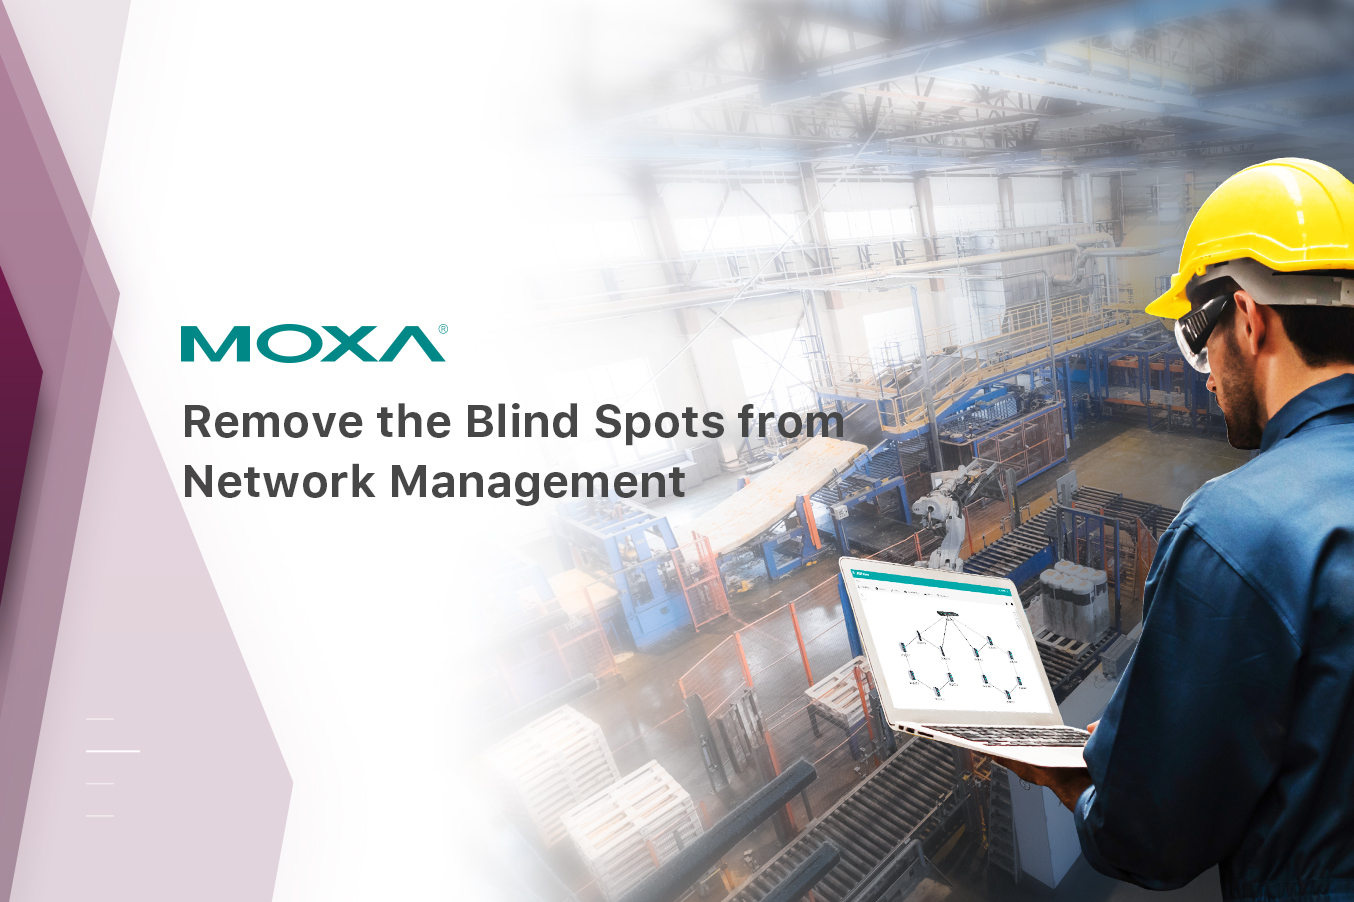 Rockford-Communication-Solutions-Moxa-Extend-the-Visibility-to-Edge-Connectivity-Campaign